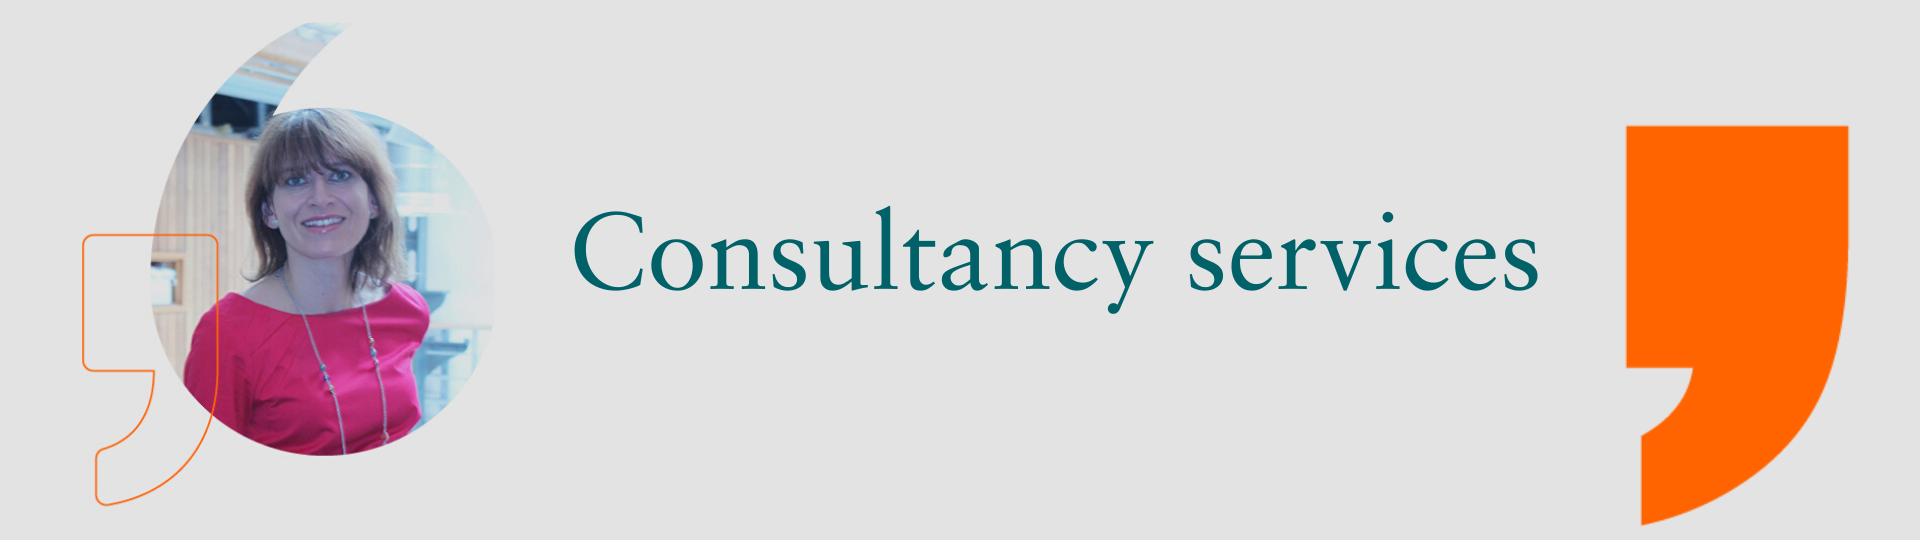 consultancy services from Julie Sykes, The Comms Guide